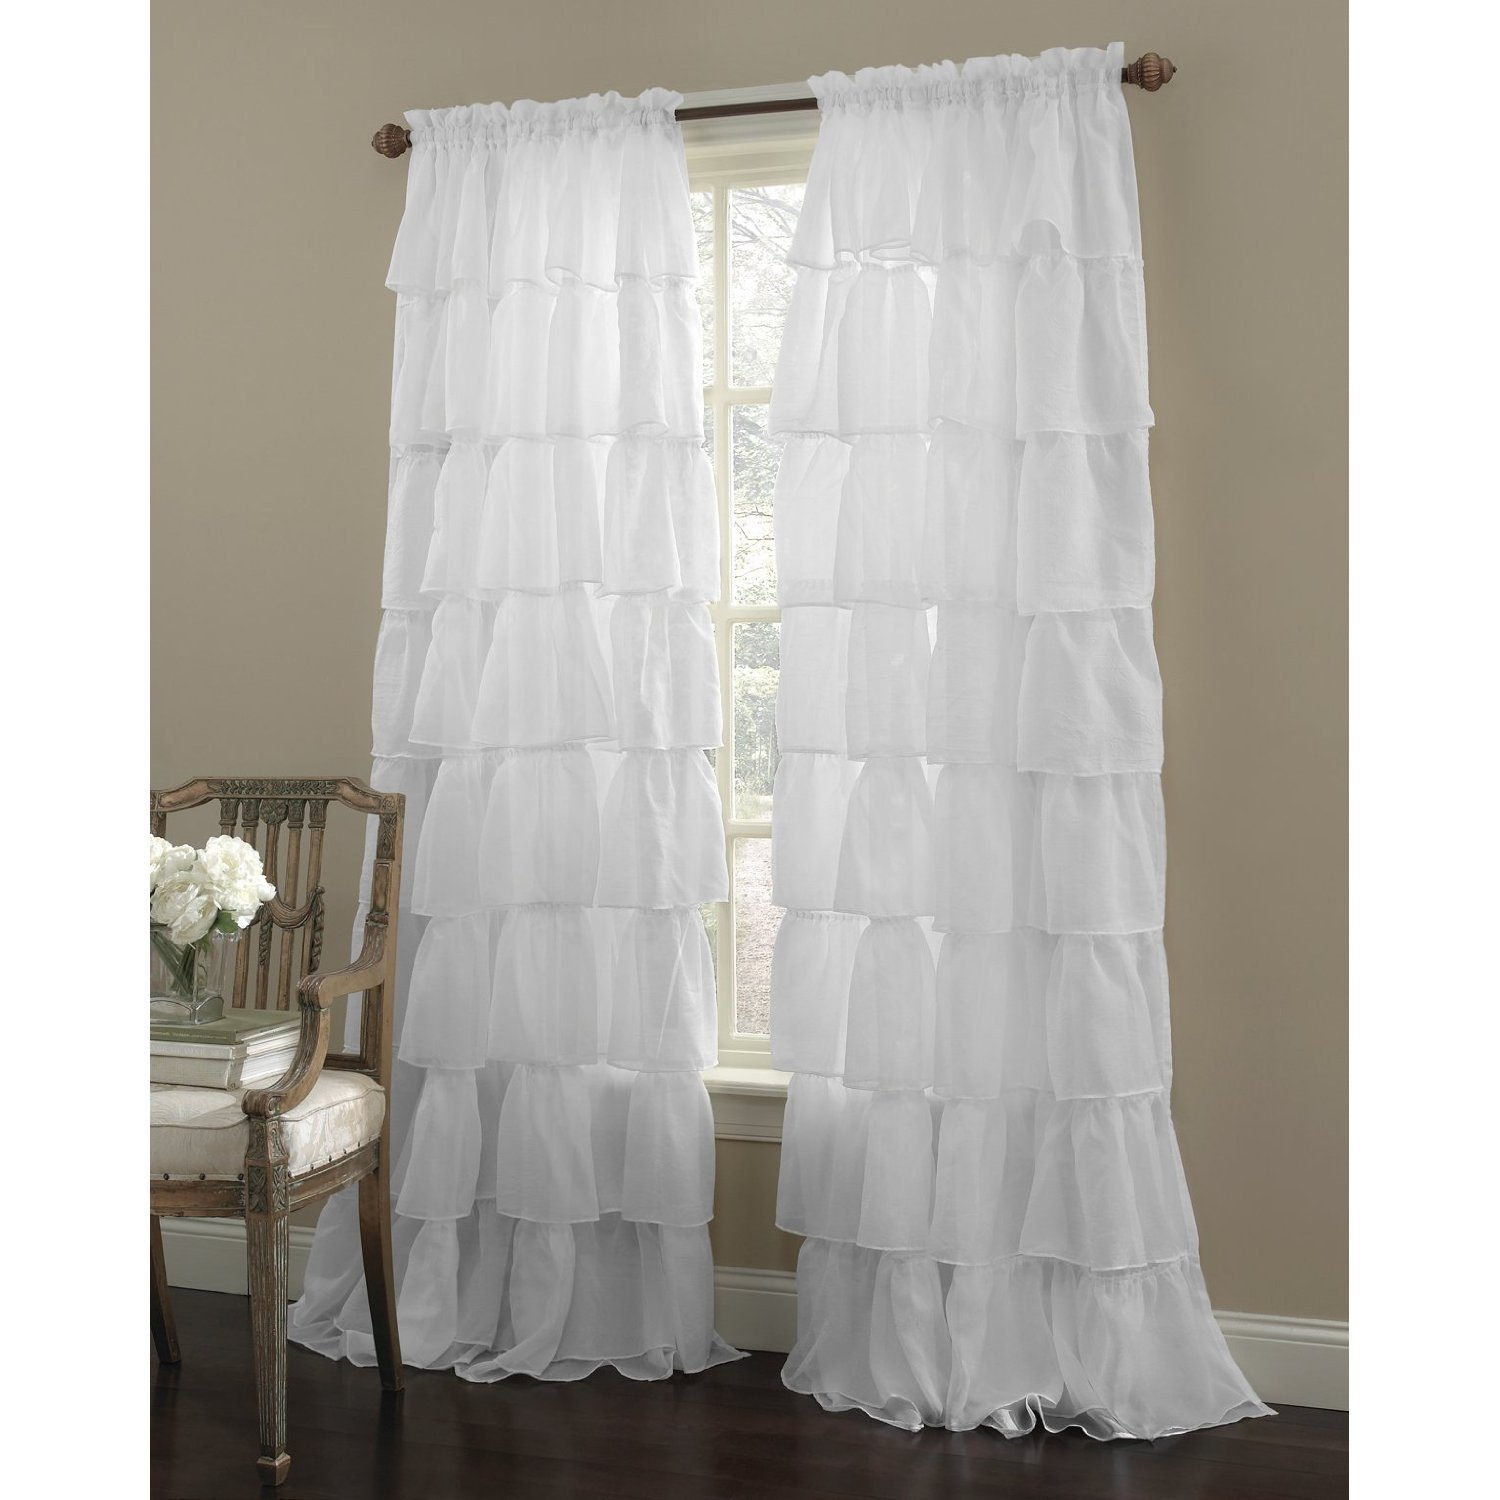 99 Problems And Drop Cloth Curtains Are One